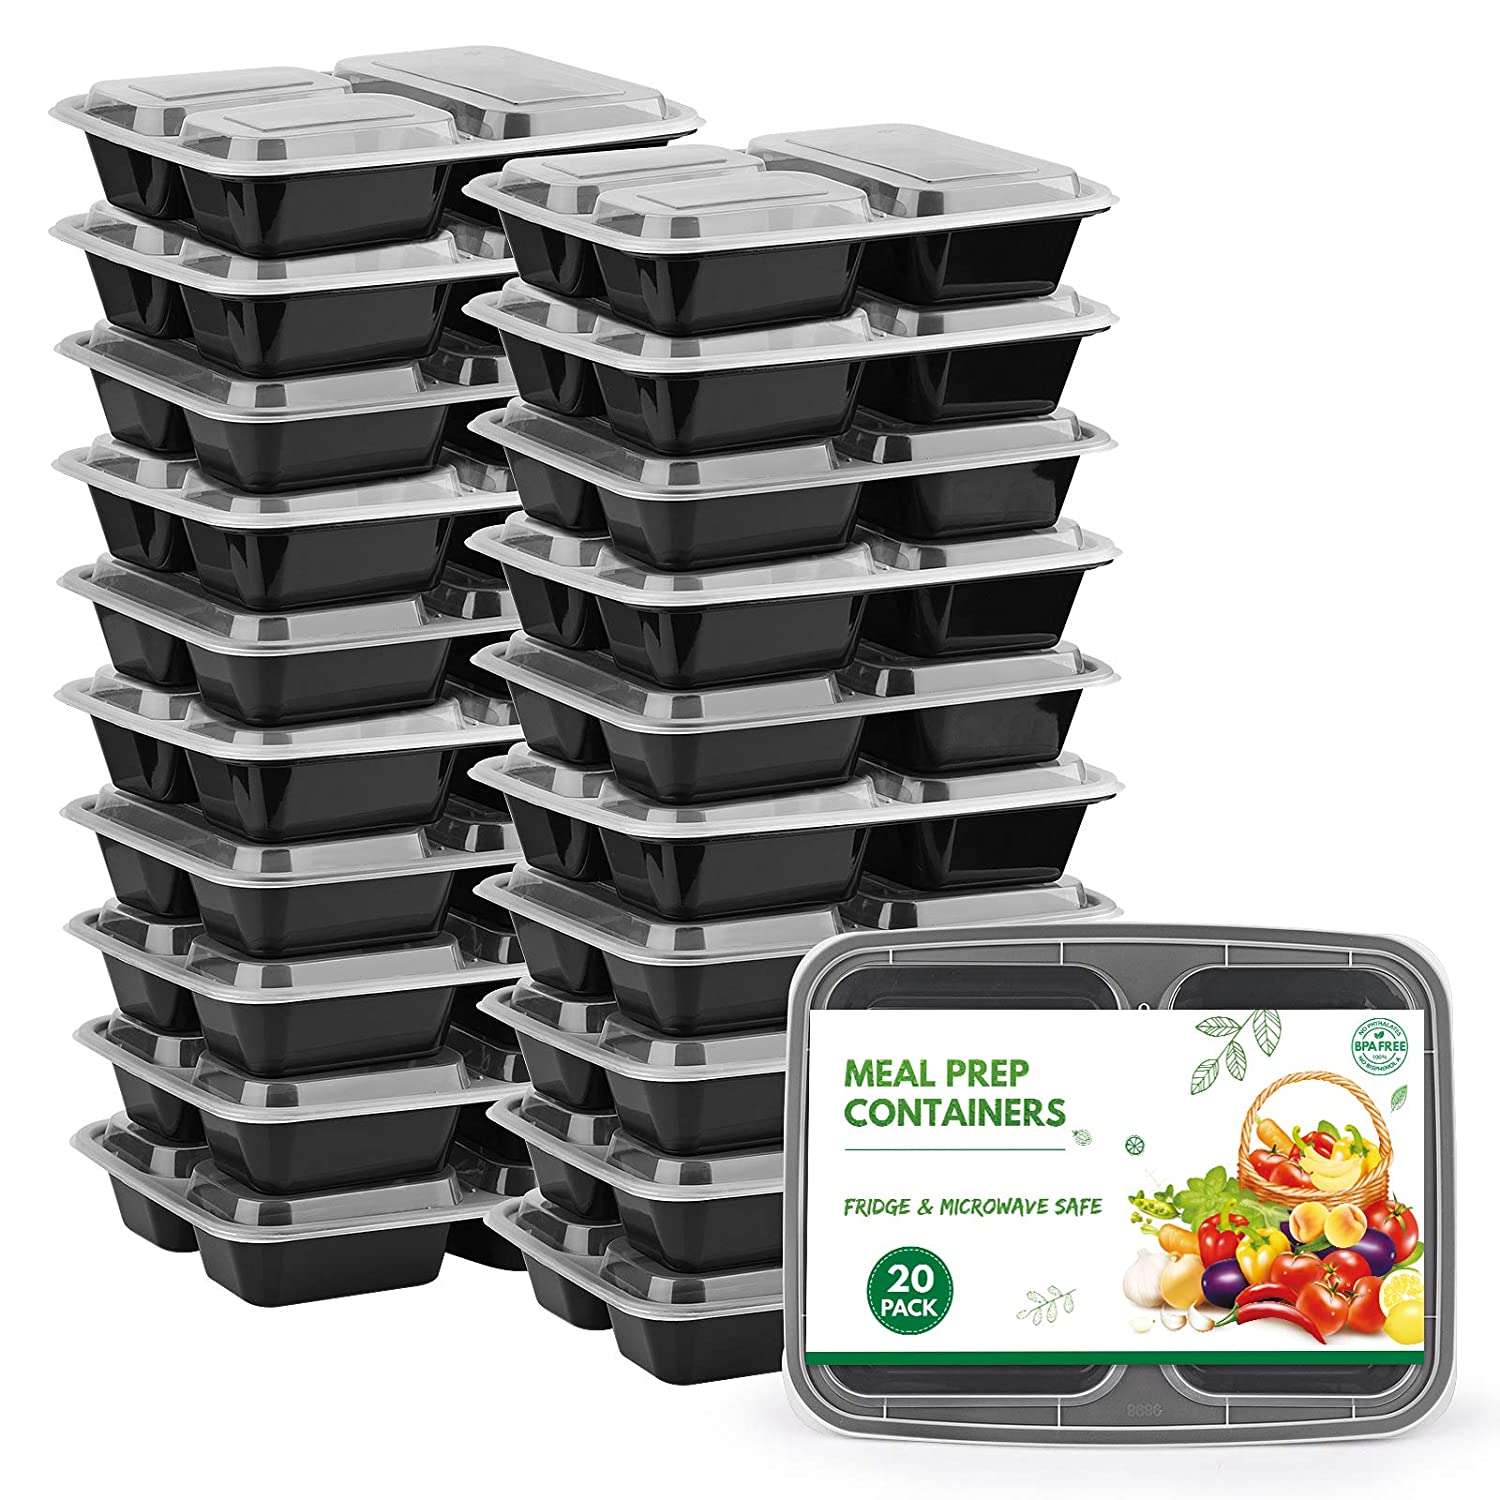 [20 Pack]Meal Prep Containers Set, 3 Compartment Food Containers,Reusable Travel & to-Go Food Storage Container Boxes, Microwavable, Fridge & Dishwasher Safe, BPA-Free (3 Compartments, 980mL)